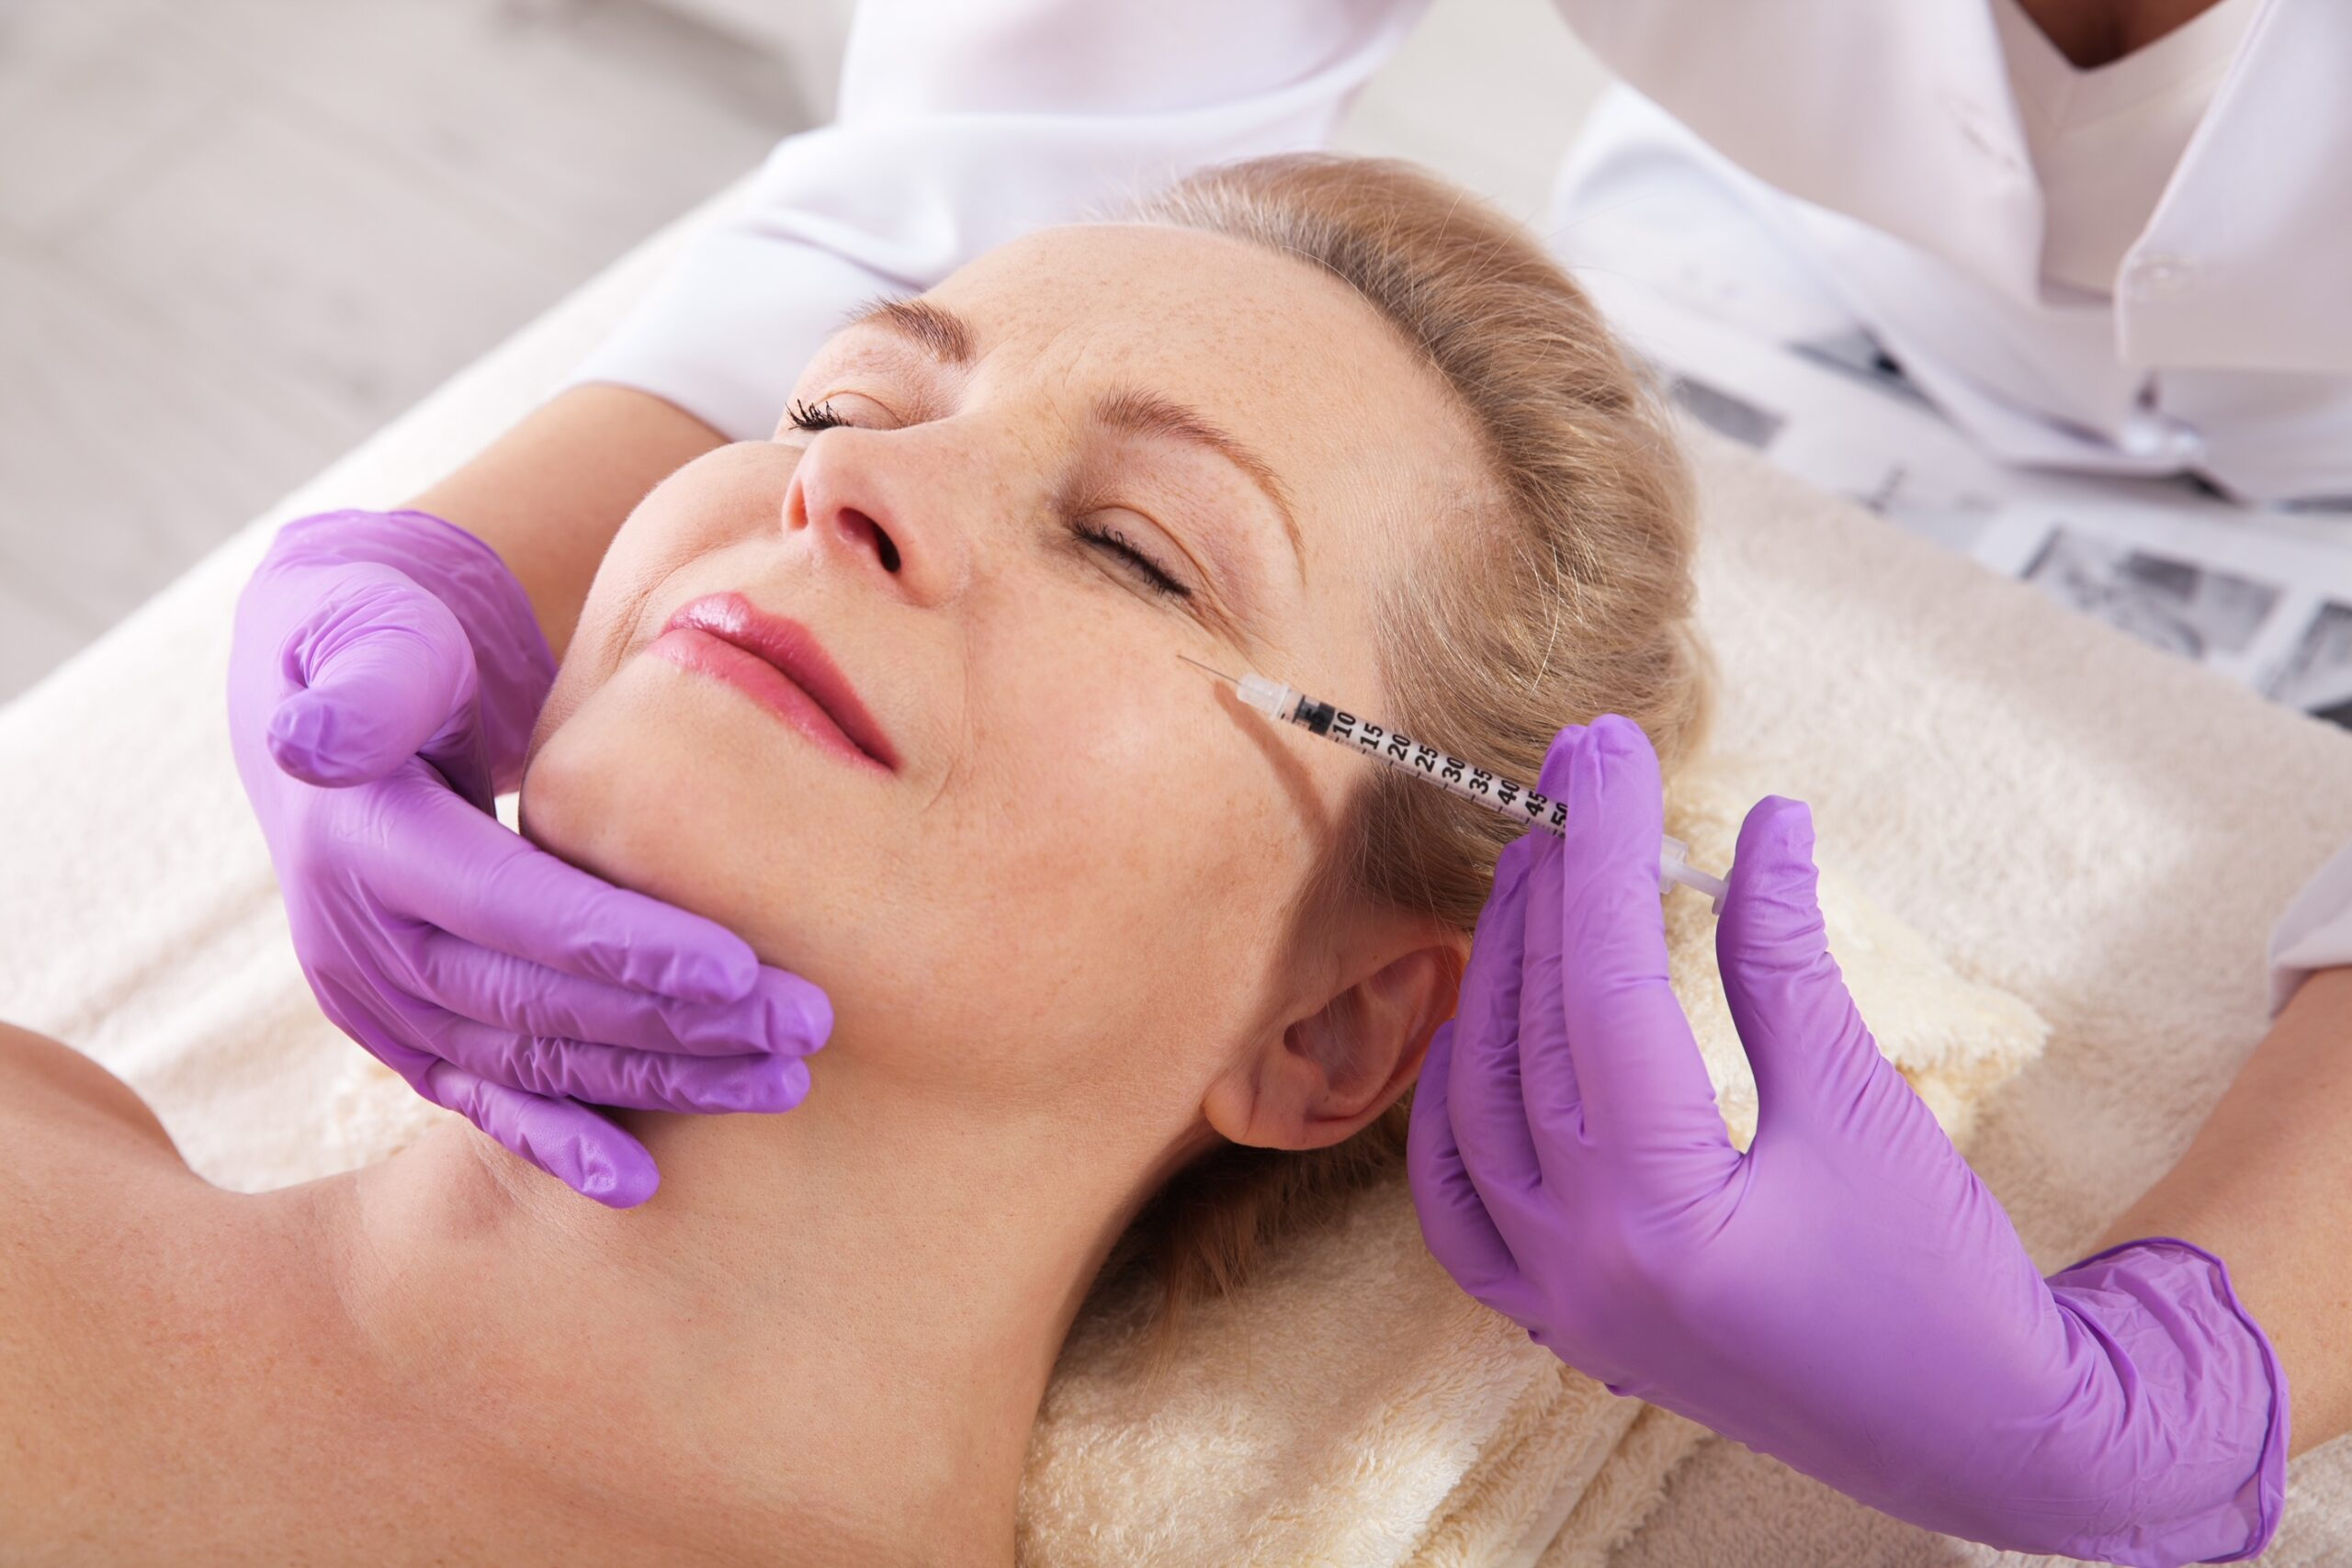 Botox injection on female face